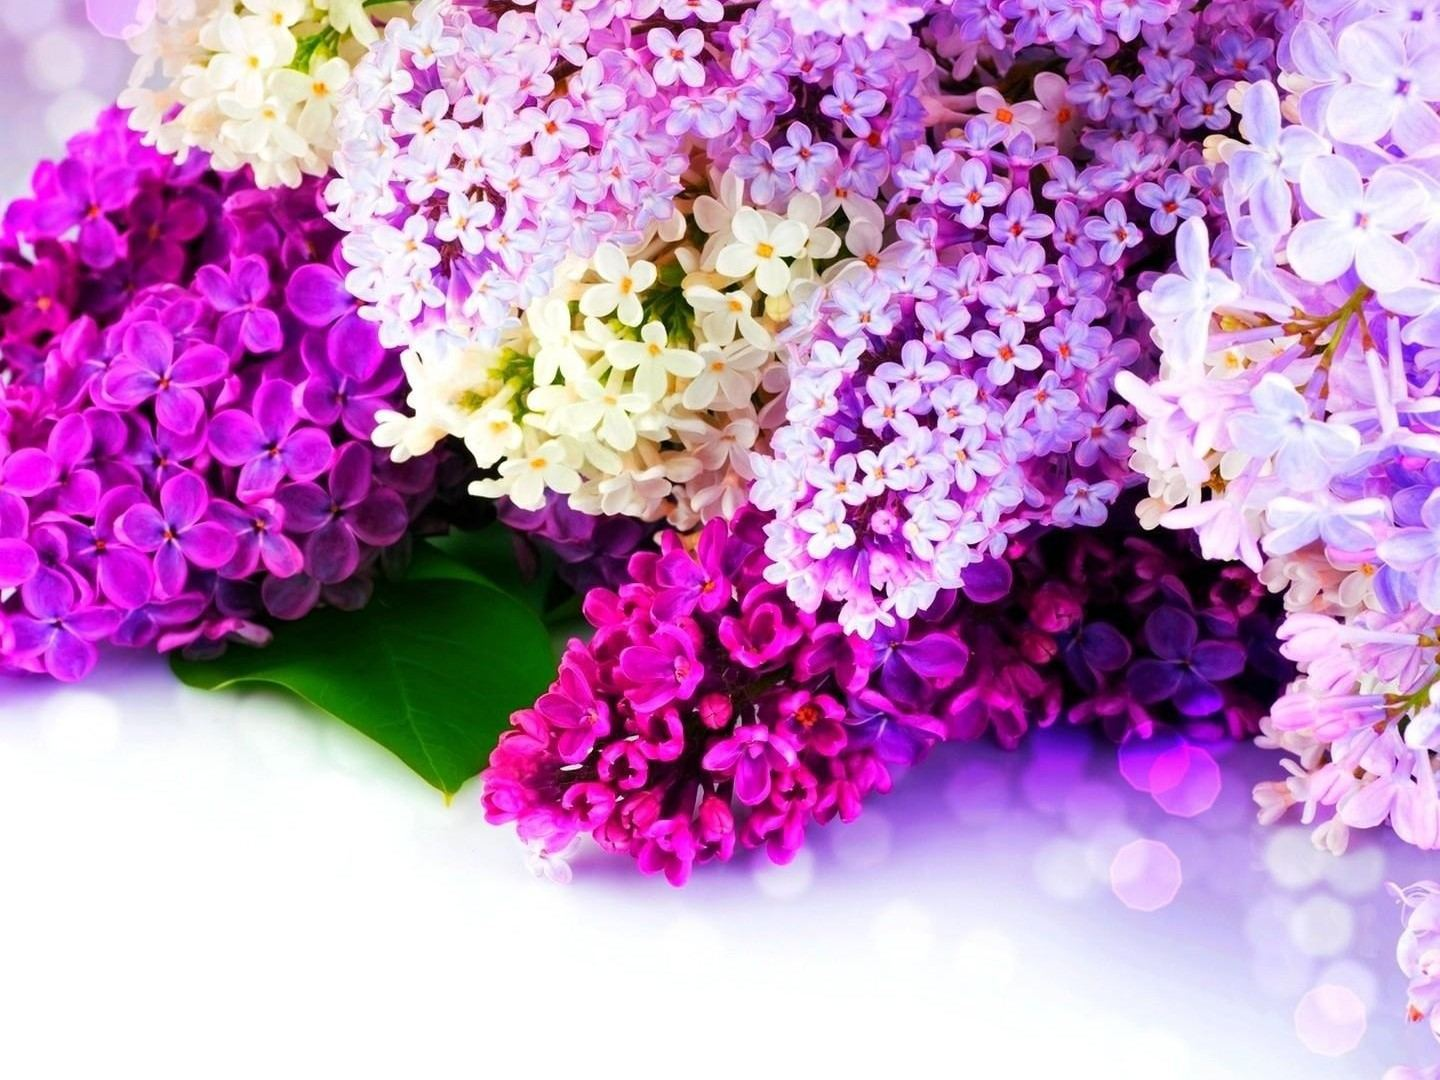 Lilac Images